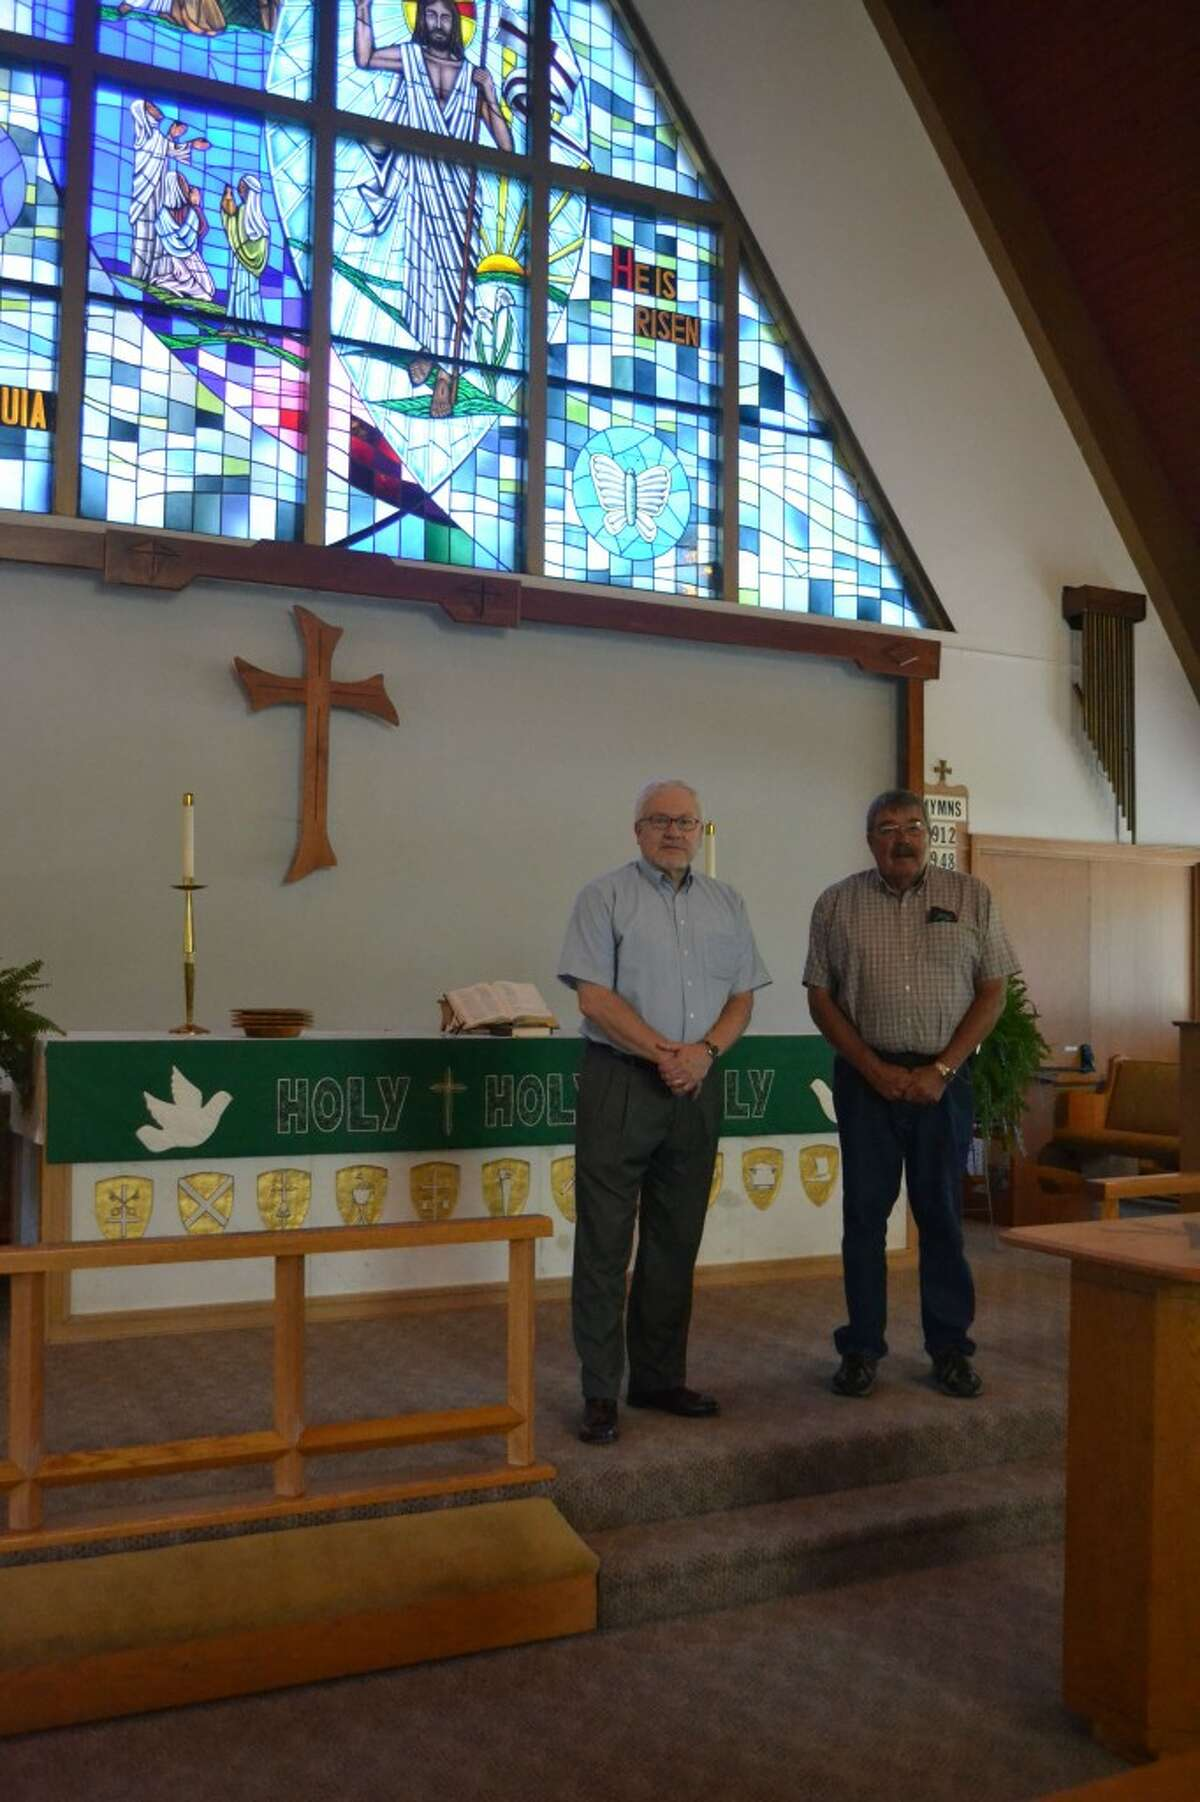 Rev. Ainslie Wagner (LEFT) and elder Joel Meister (RIGHT) guided the congregation of Trinity Lutheran of Onekama as parishioners decided to relight the cross. (Meg LeDuc/News Advocate)